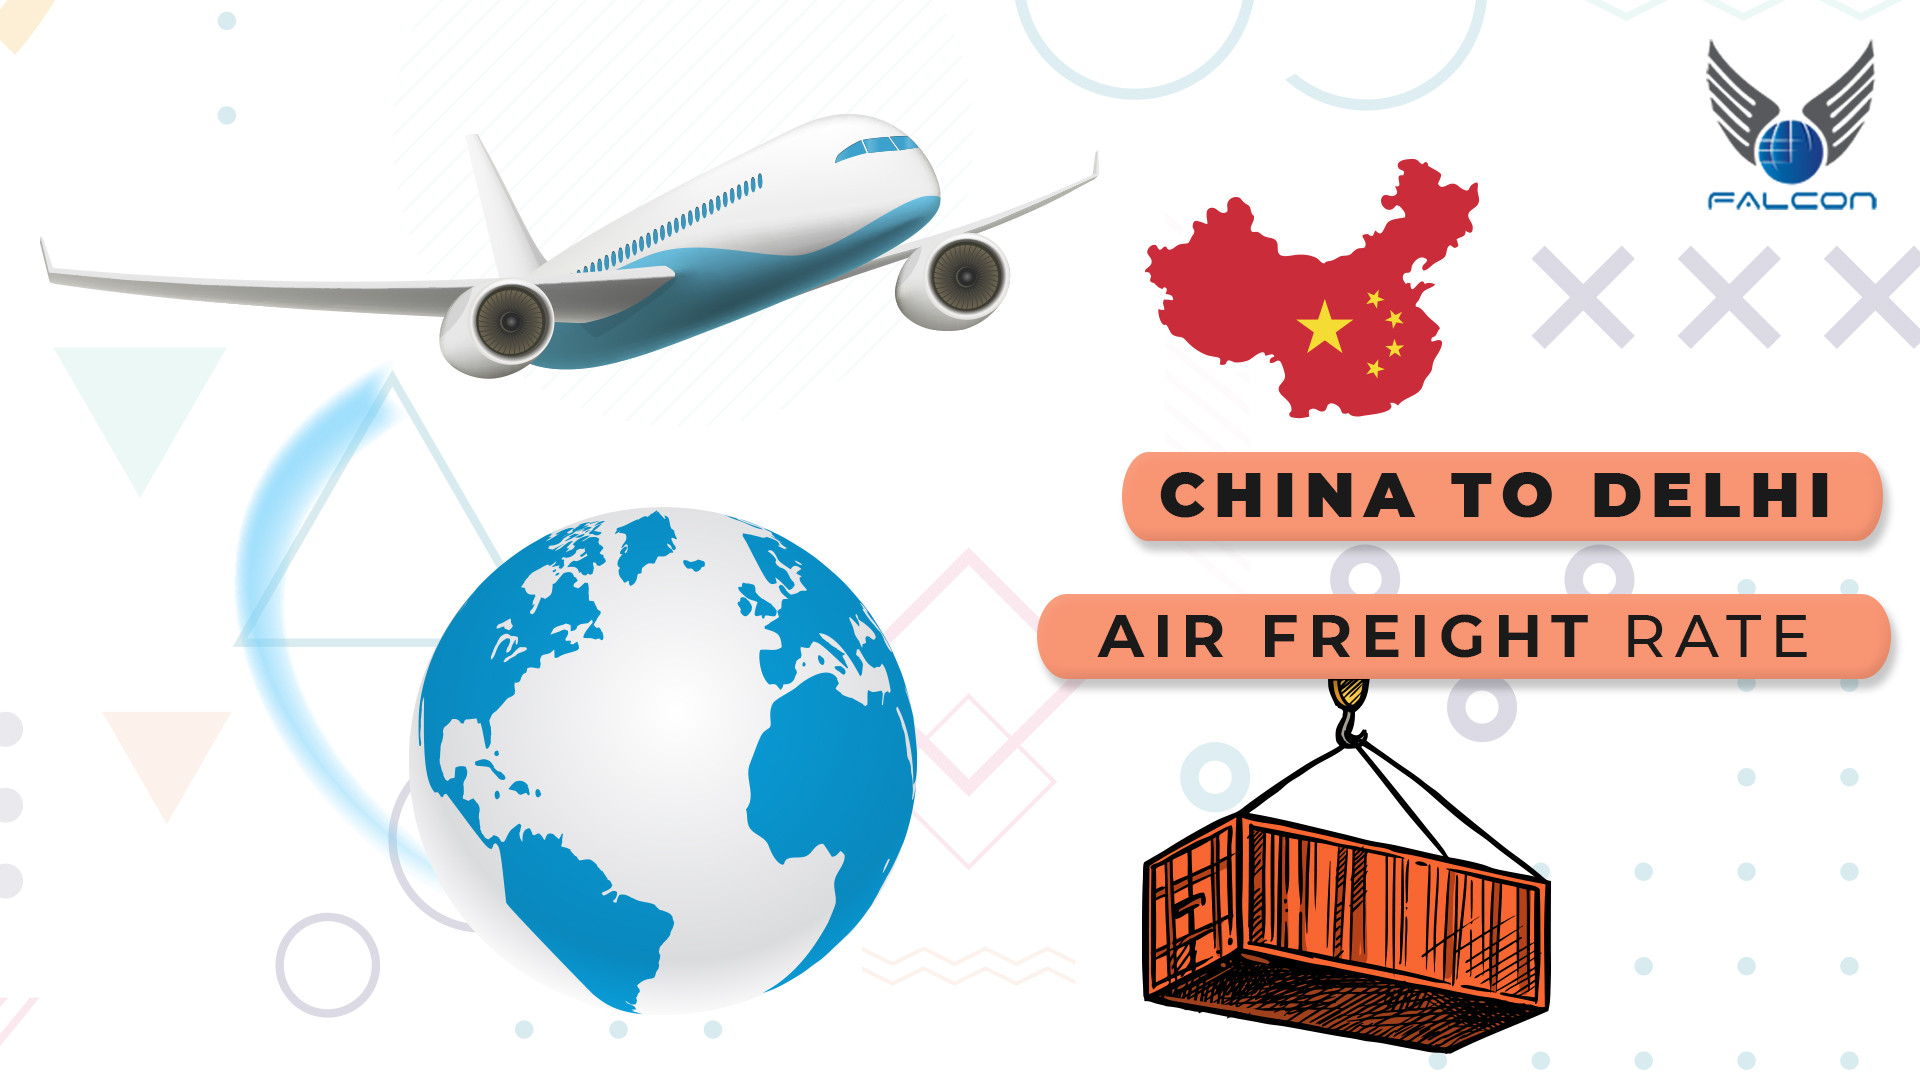 China to Delhi air freight rate